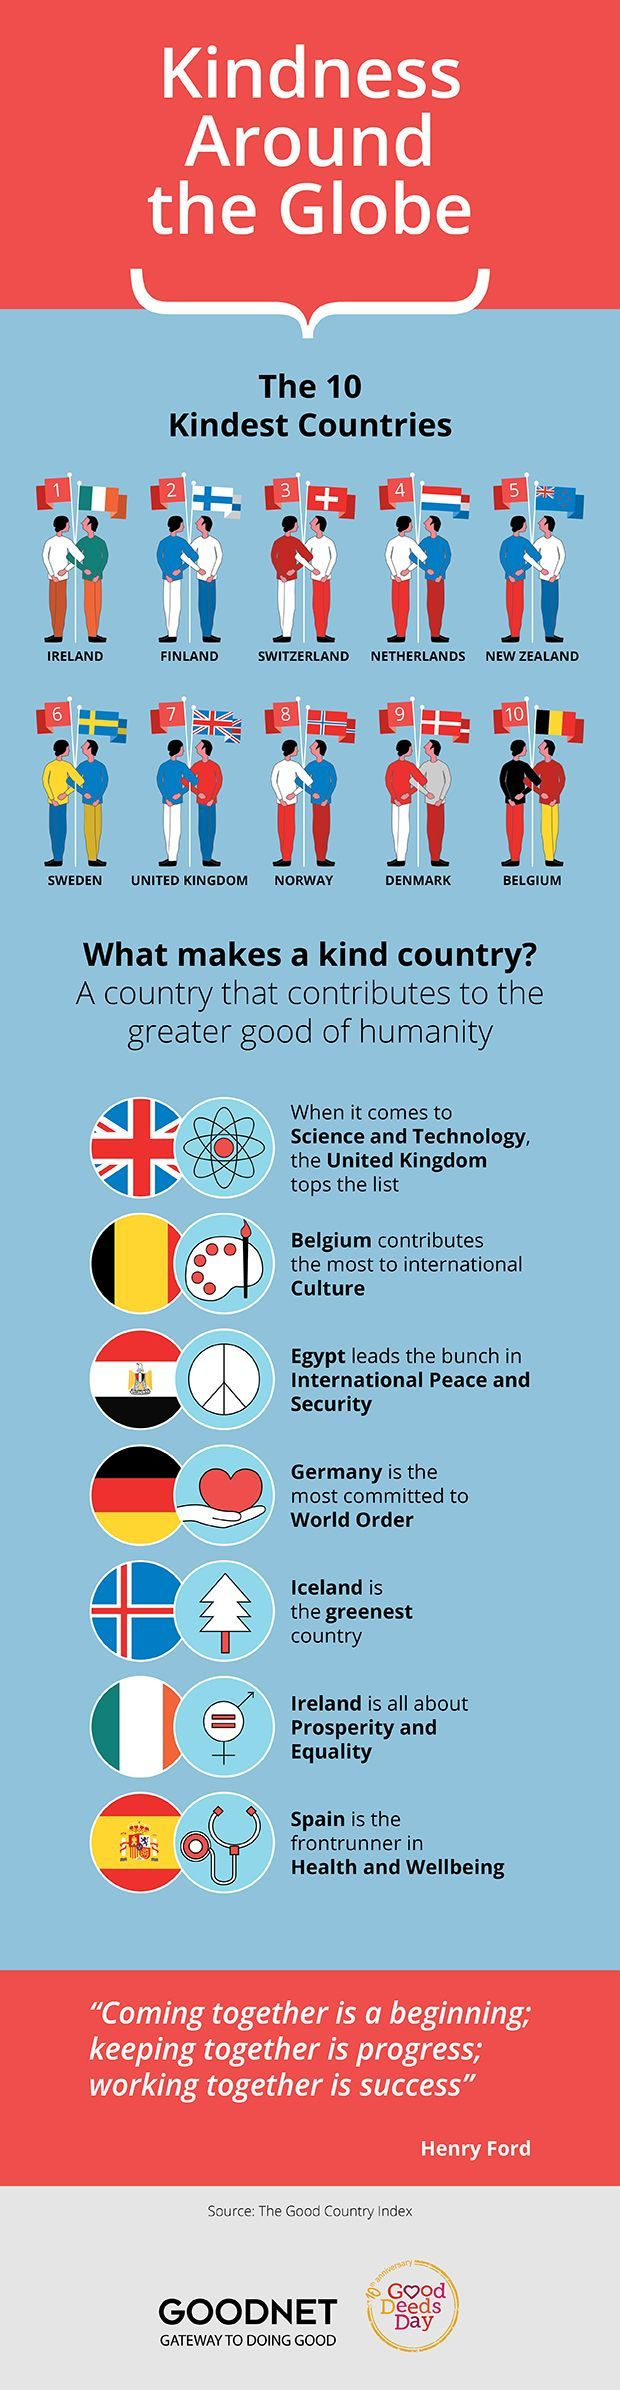 Kindness Around the World What makes a kind country? A country that contributes to the greater good of humanity. Ireland Finland Switzerland Netherlands New Zealand Sweden United Kingdom Norway Denmark Belgium When it comes to Science and Technology, the United Kingdom tops the list. Belgium contributes the most to international Culture Egypt leads the bunch in International Peace and Security Germany is the most committed to World Order Iceland is the greenest country Ireland is a...